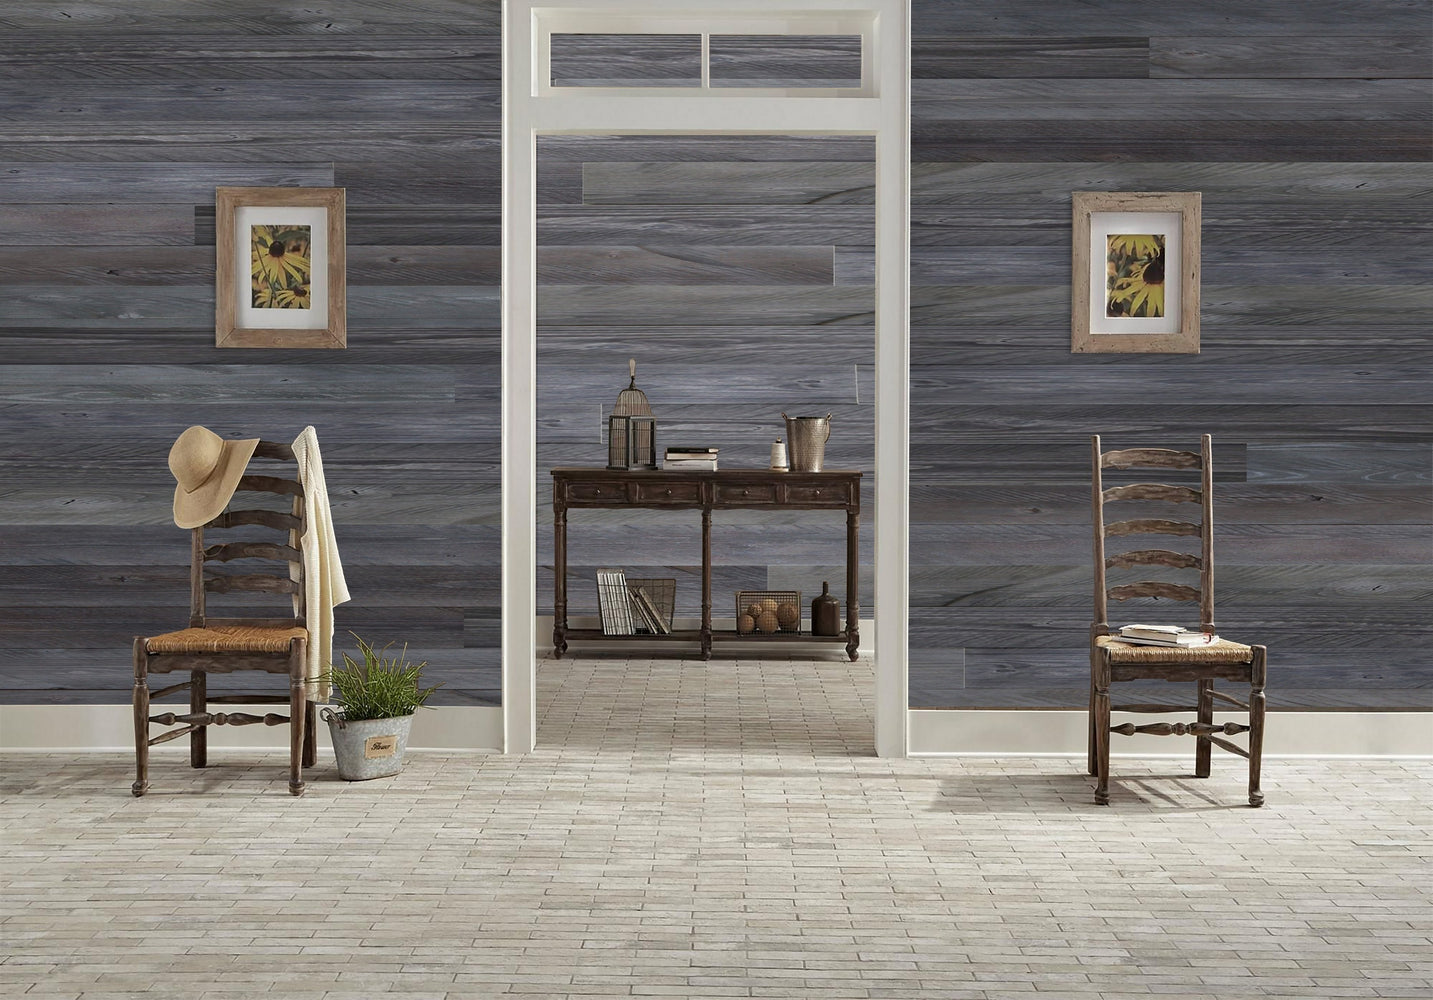 Self Adhesive Wall Panels Peel & Stick Rustic Reclaimed Barn Wood Paneling (Style: C19)